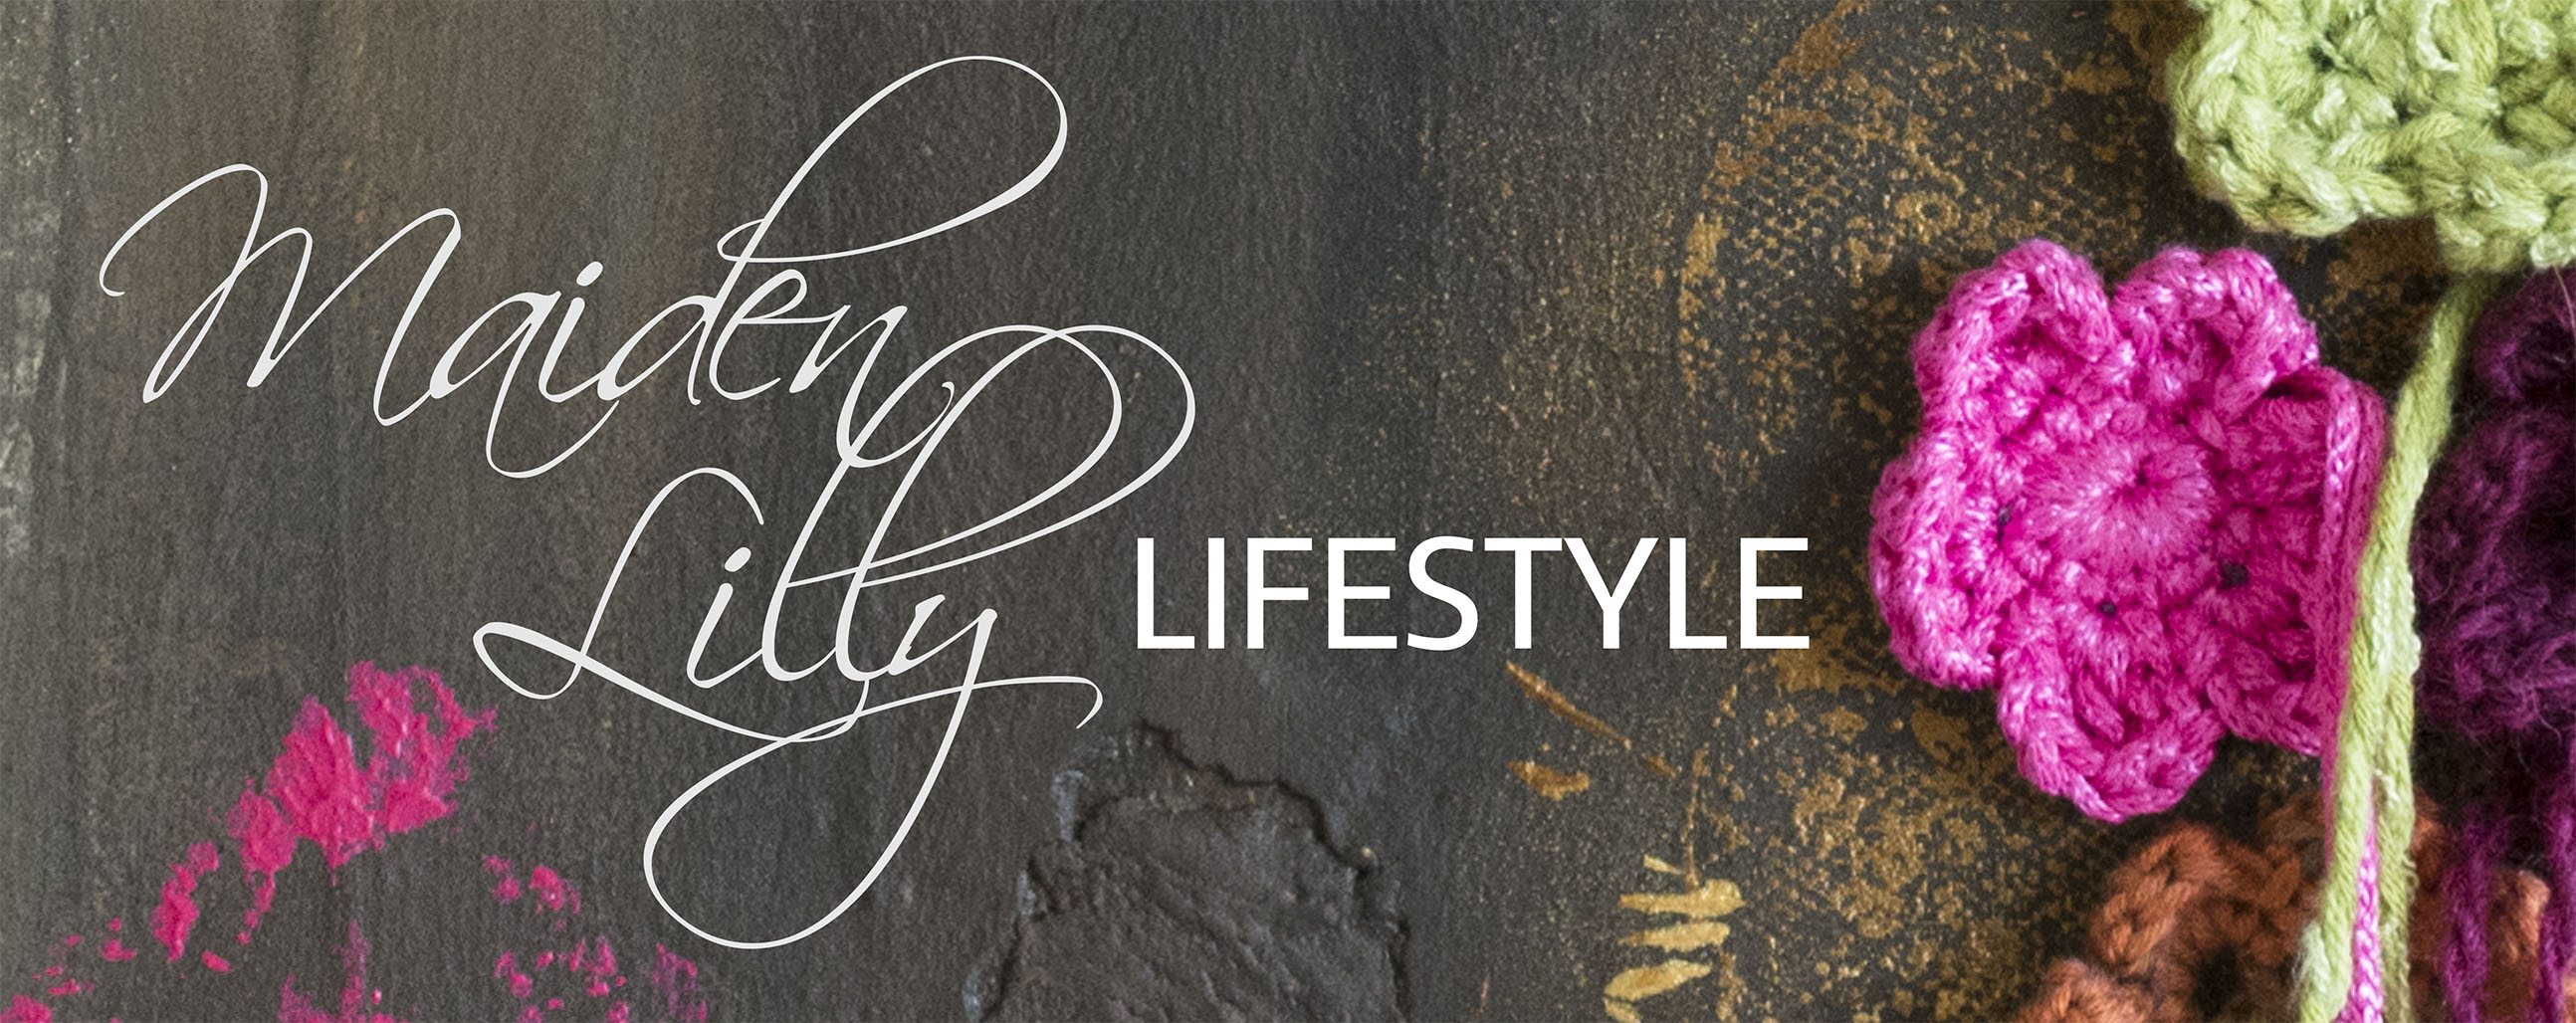 Maiden Lilly Lifestyle Logo